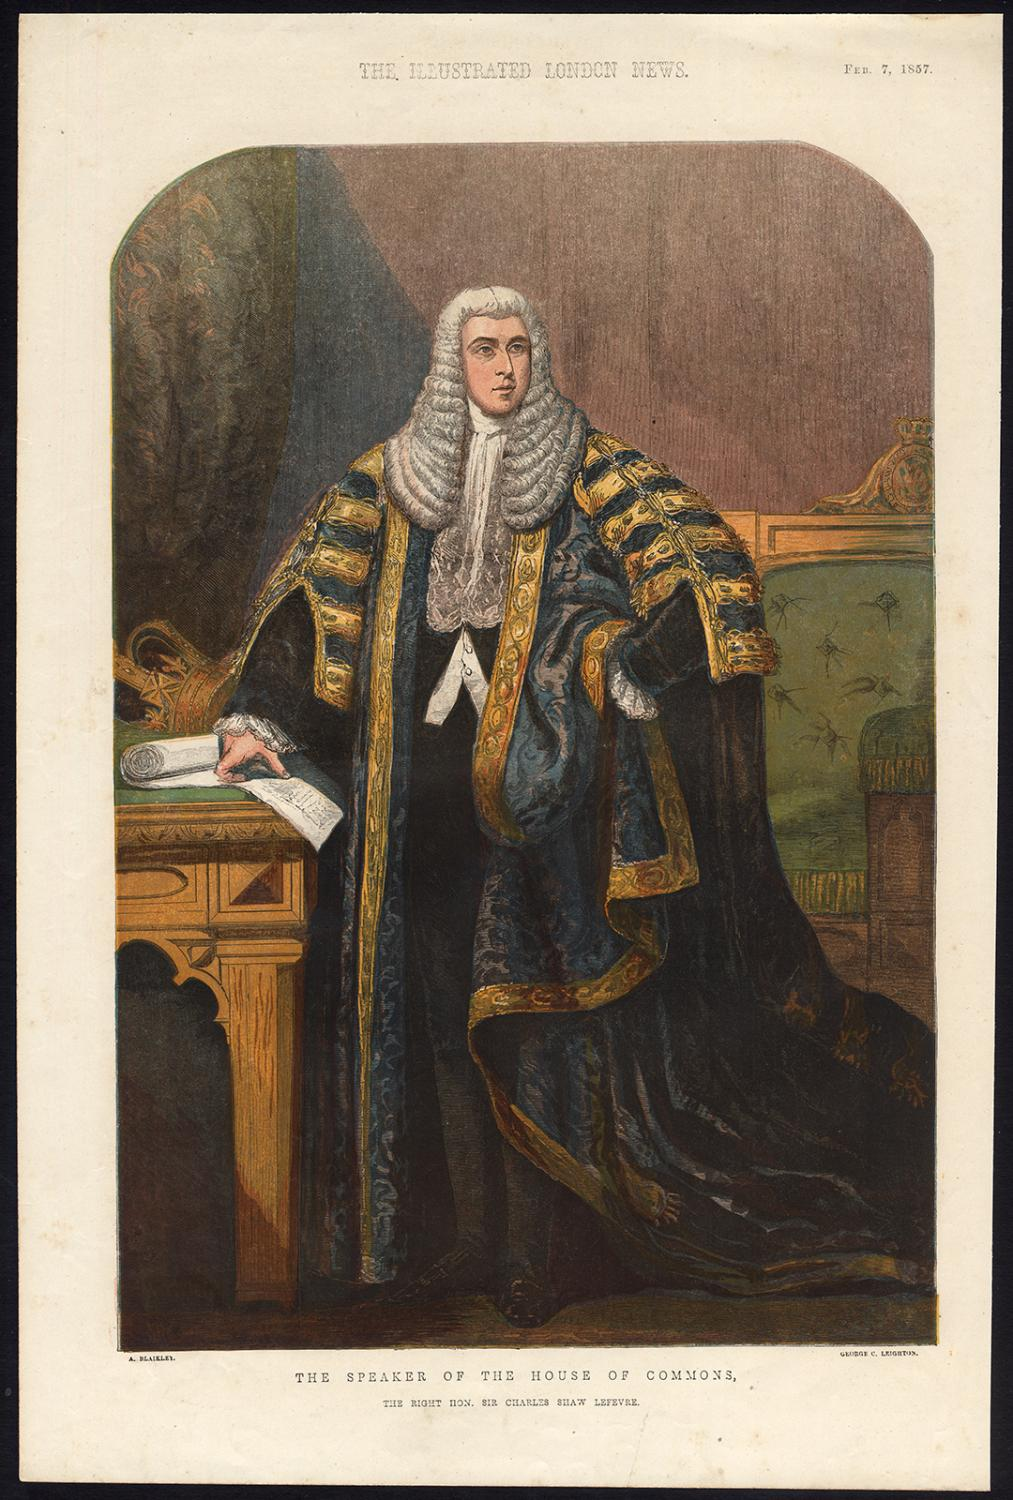 Antique Print-CHARLES SHAW LEFEVRE-SPEAKER-HOUSE-COMMONS-Leighton-Blaikley-1857